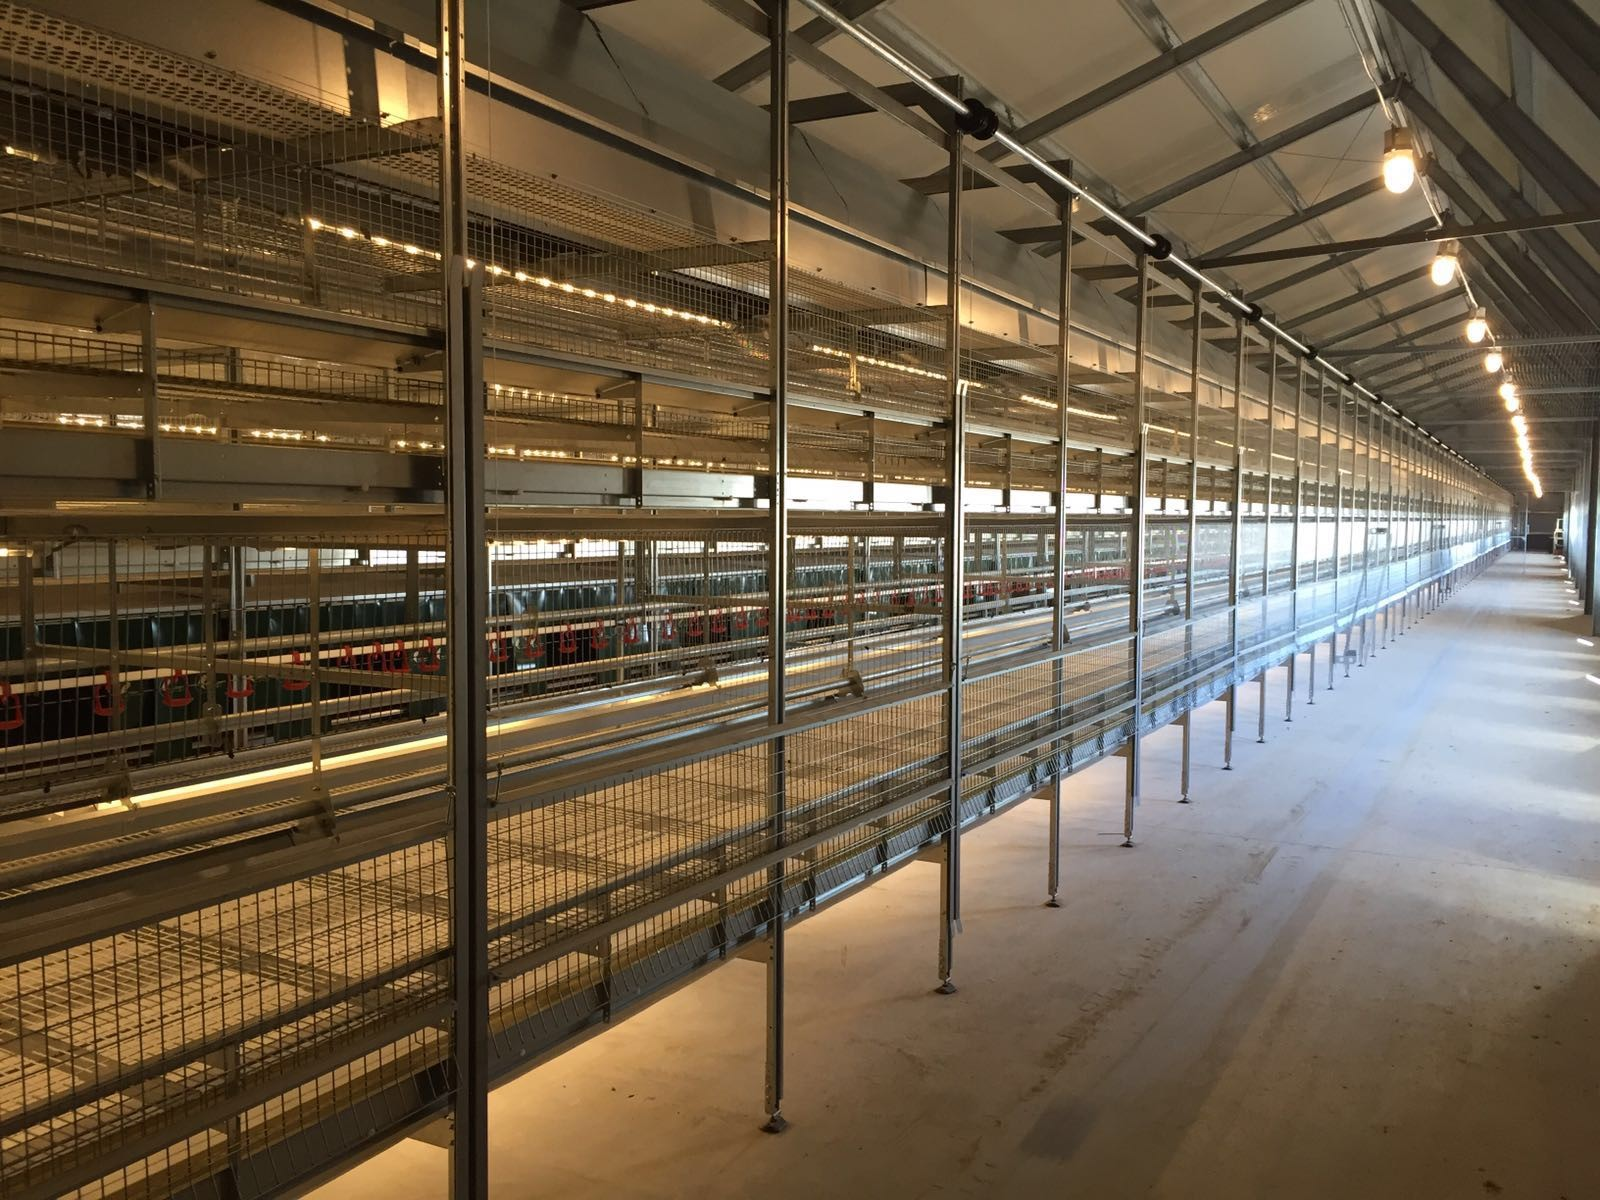 FIT Farm Innovation Team - Golden Layer NATURE_1 cage free aviary system - move in ahead 1